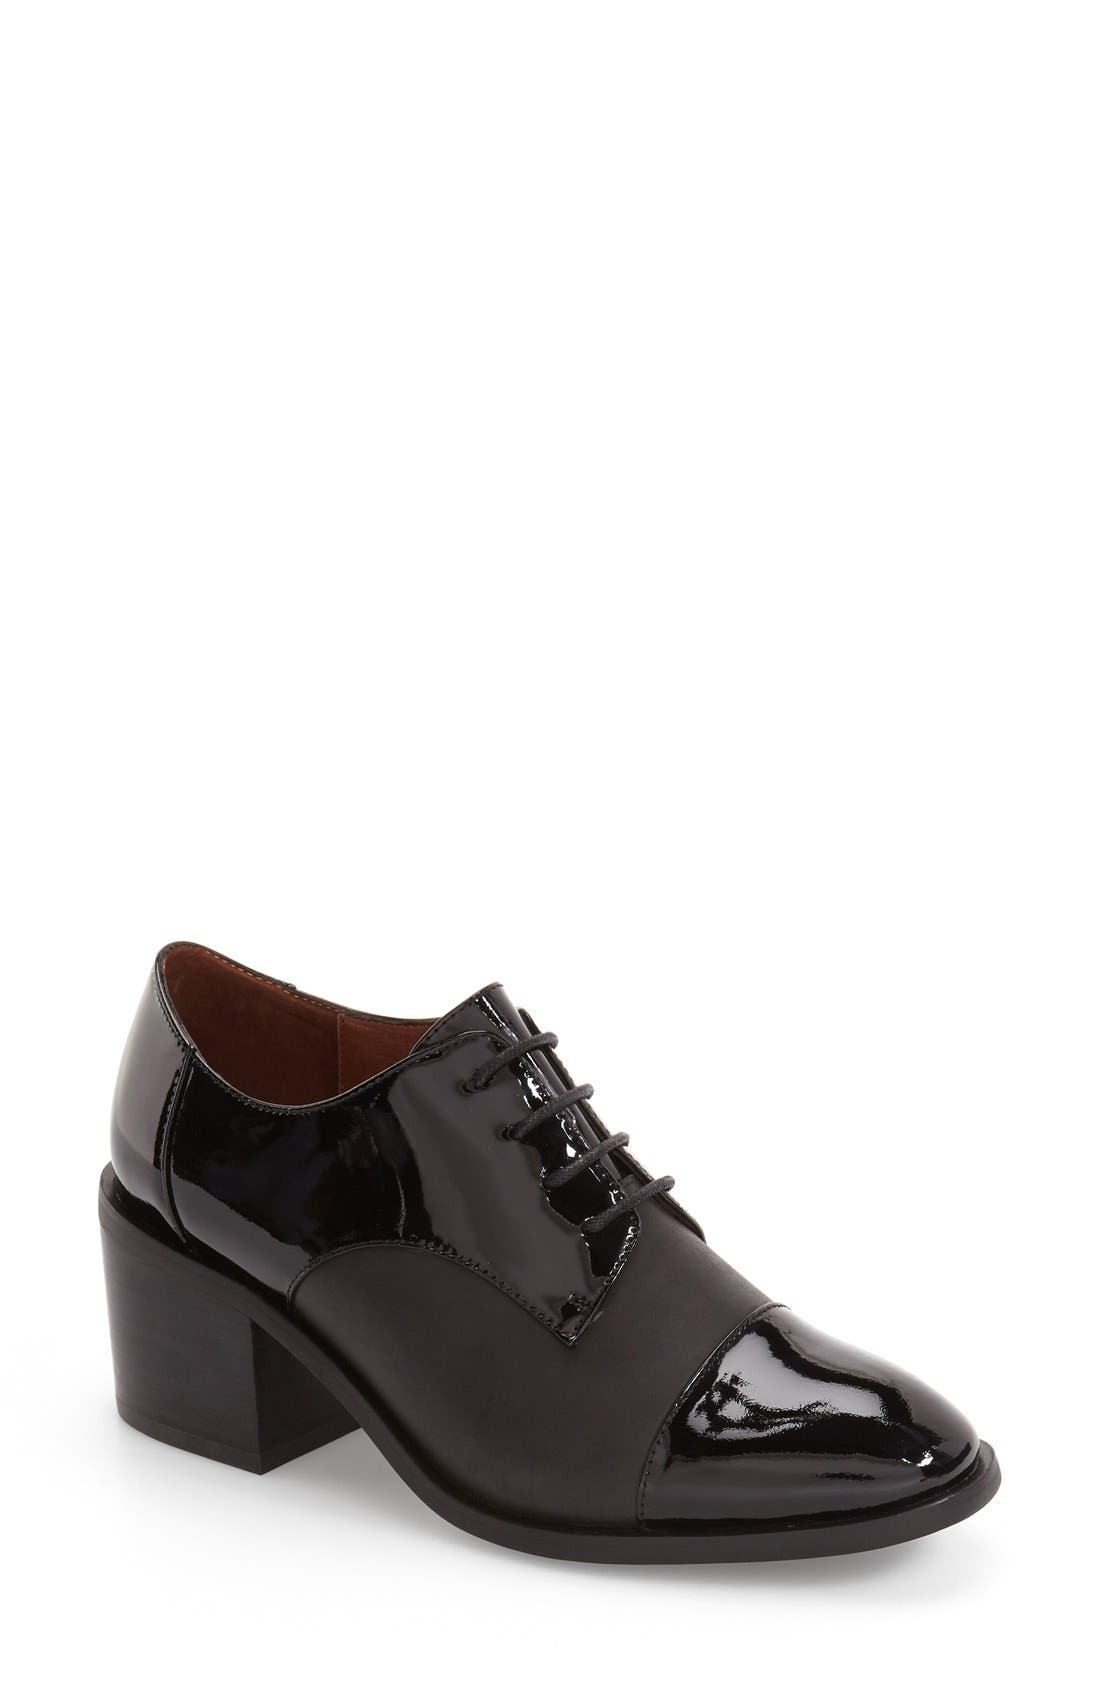 Main Image - Jeffrey Campbell 'Egan' Cap Toe Oxford (Women)